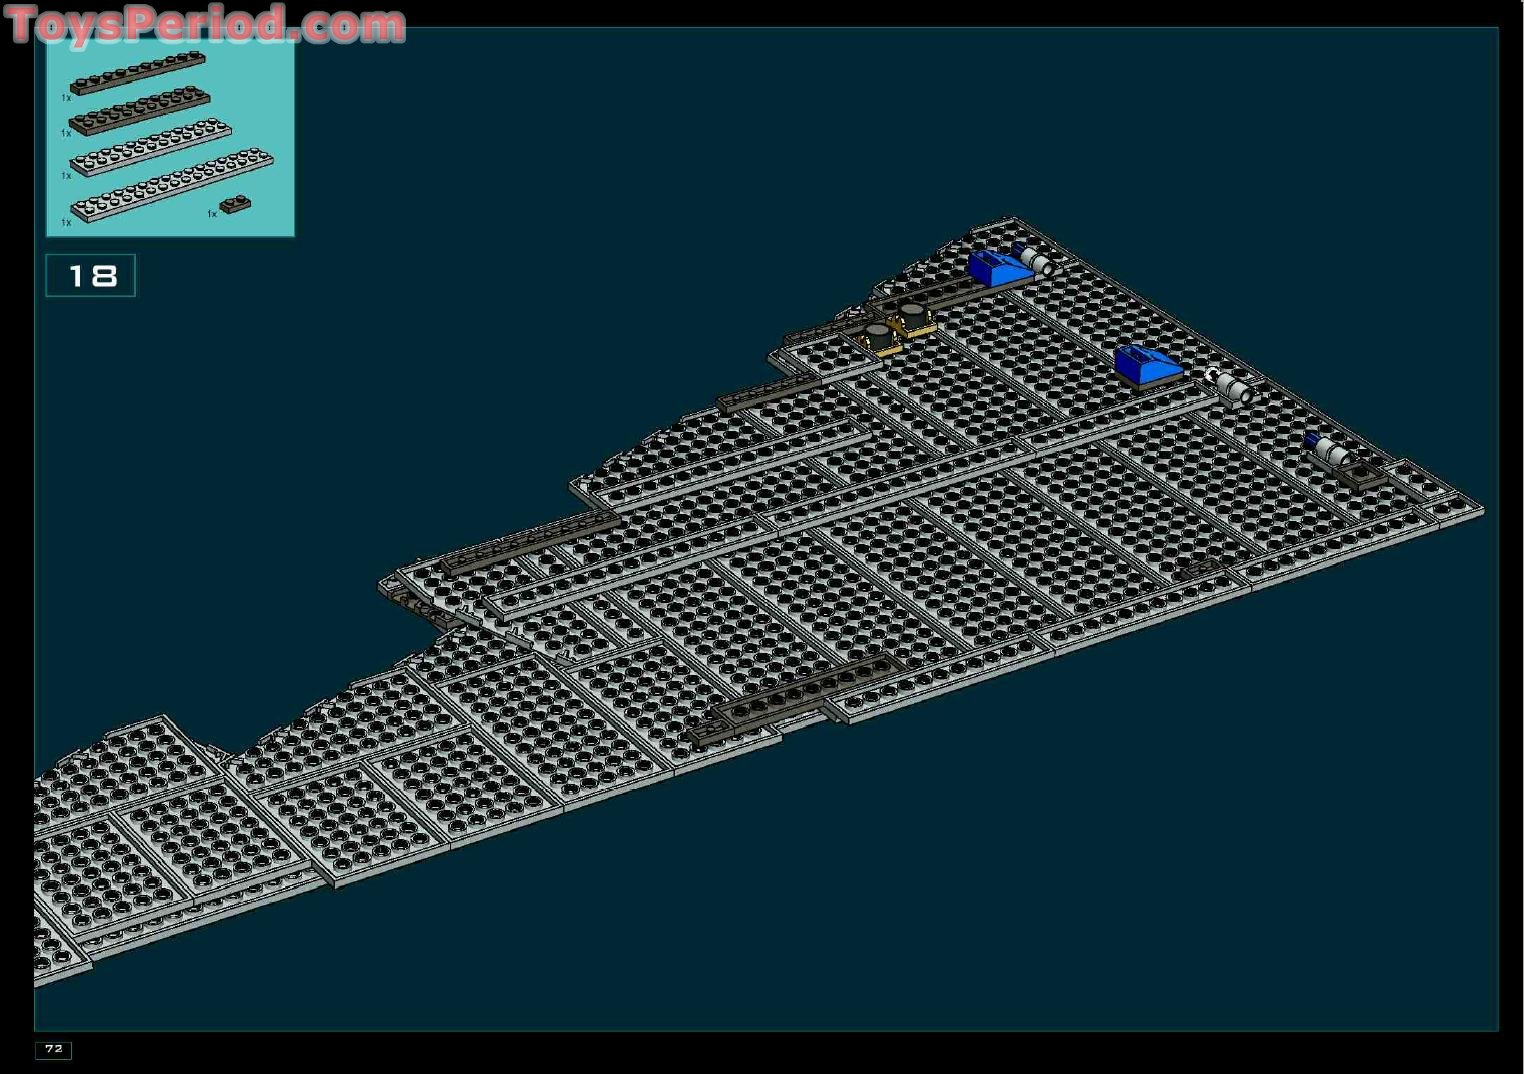 lego imperial star destroyer instructions